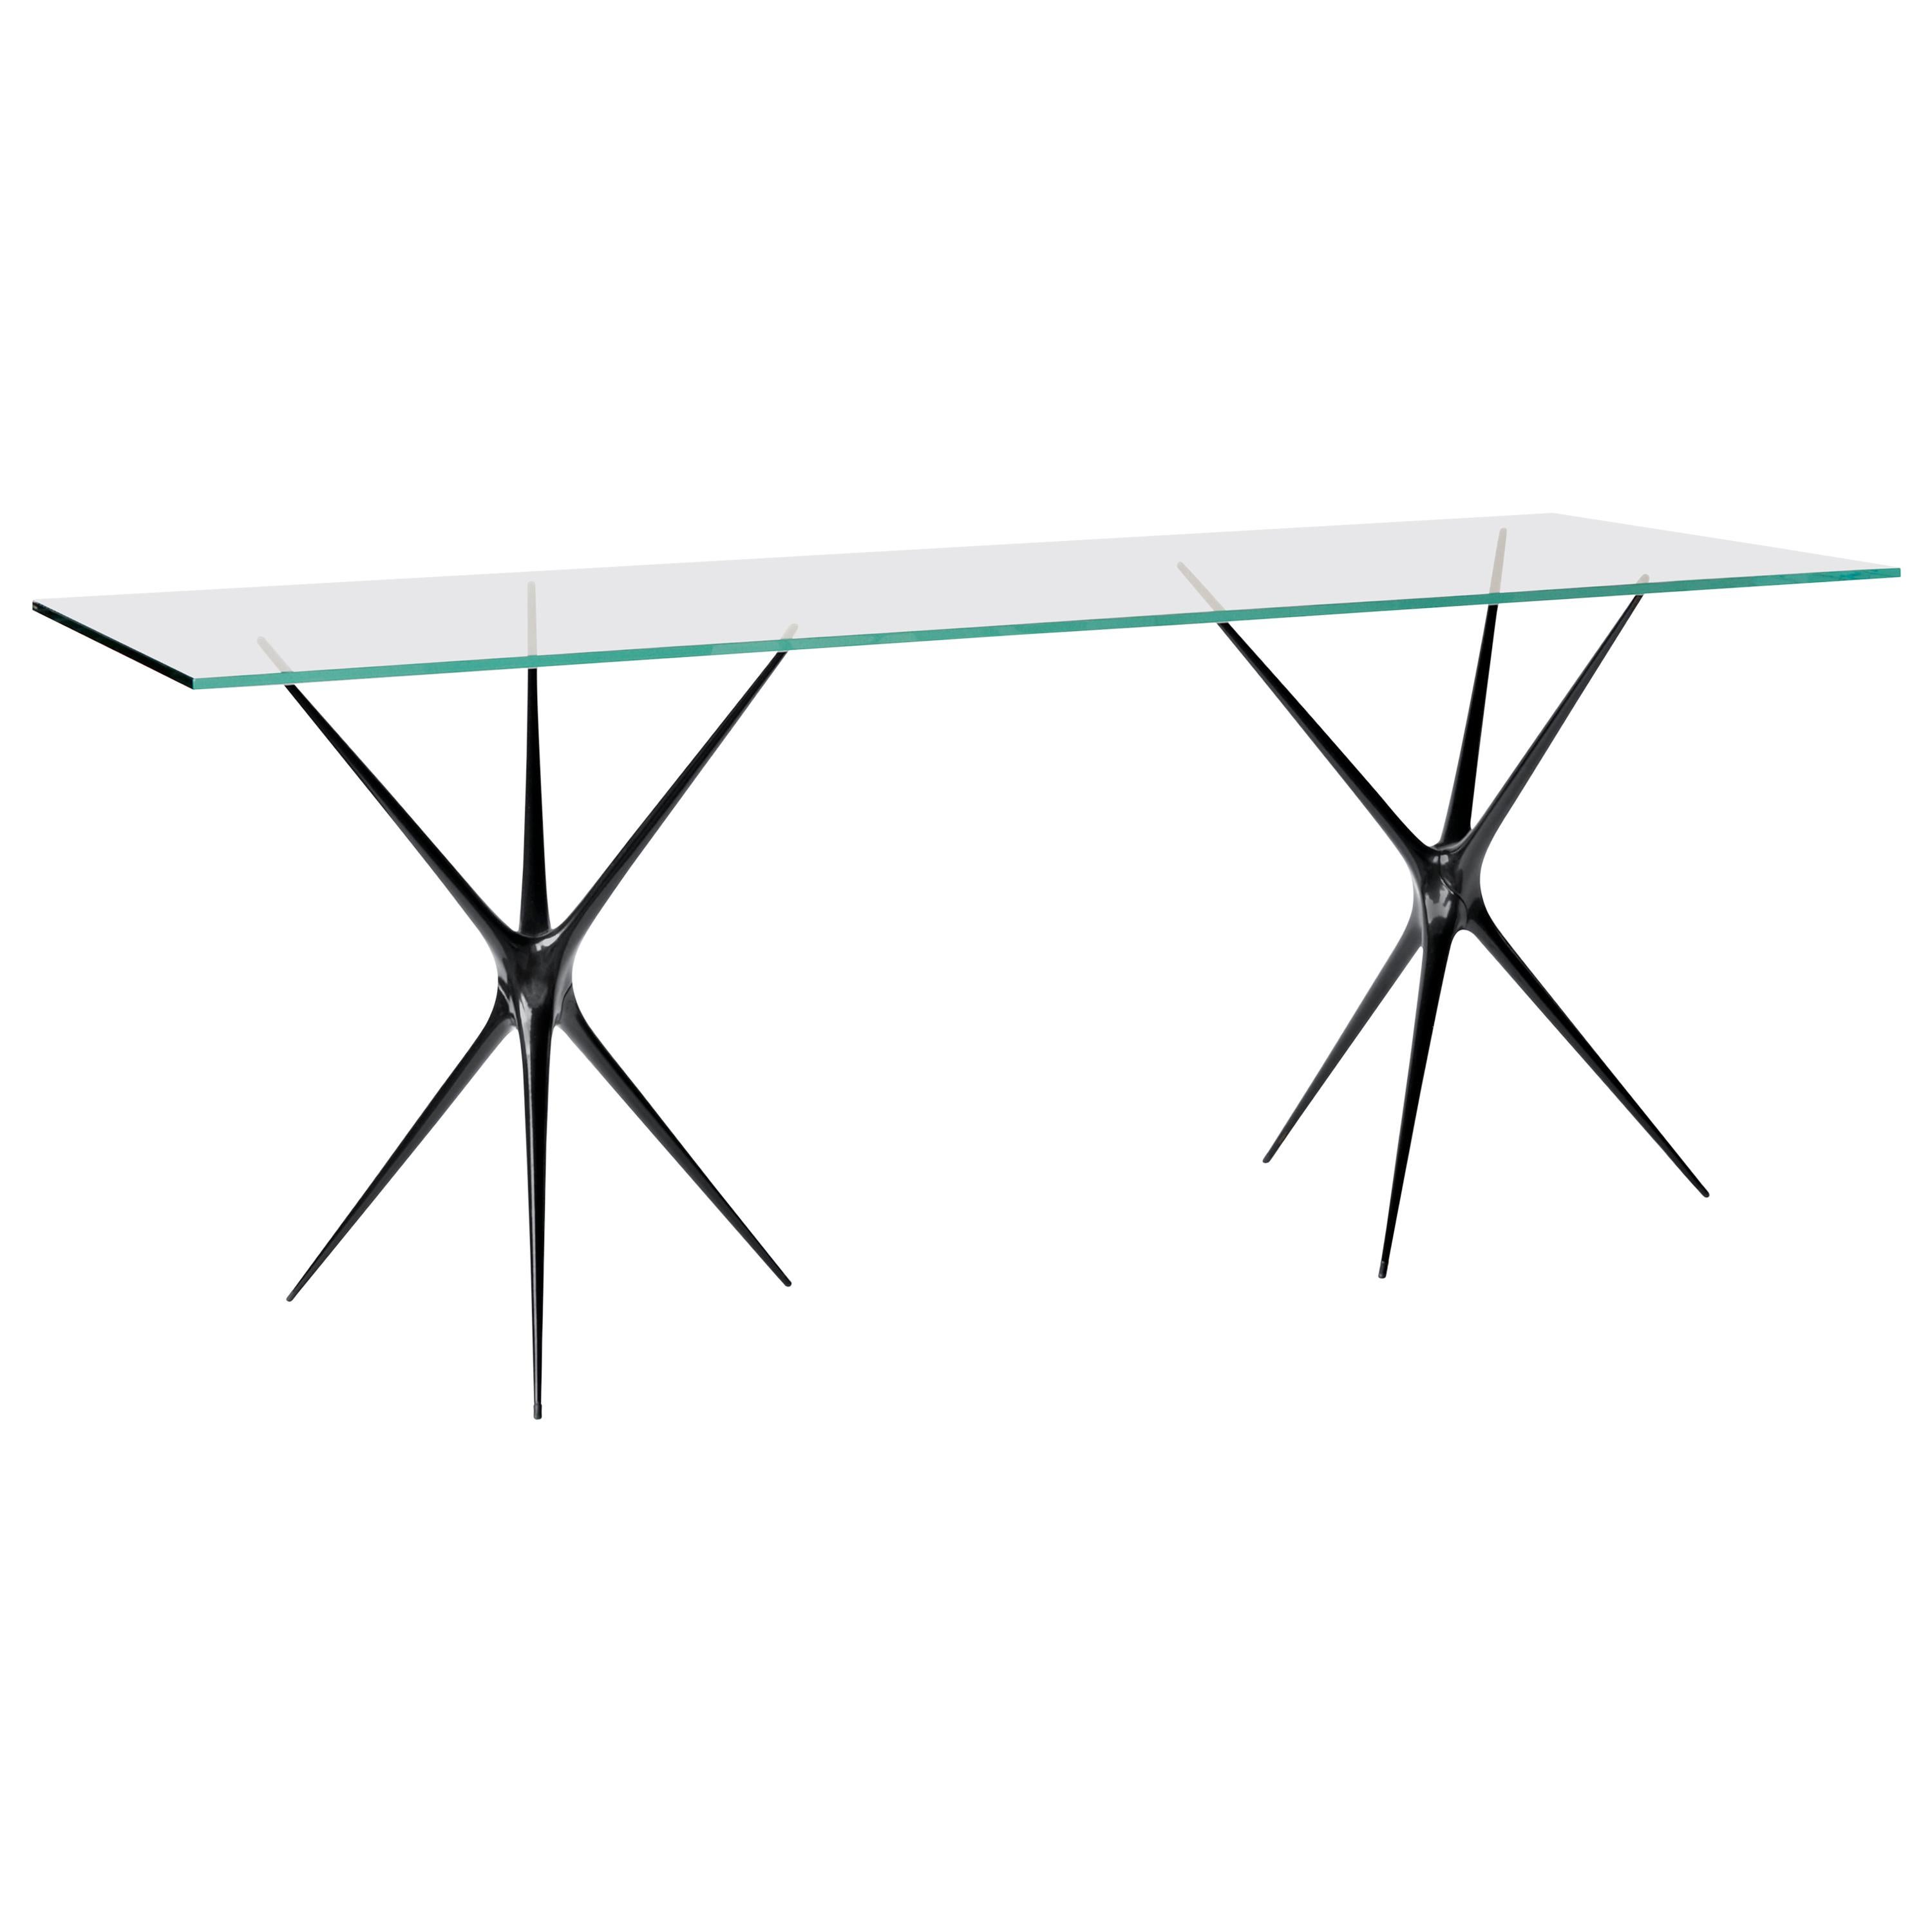 Supernova, Recycled Cast Aluminum Black Trestles & Glass Desk by Made in Ratio